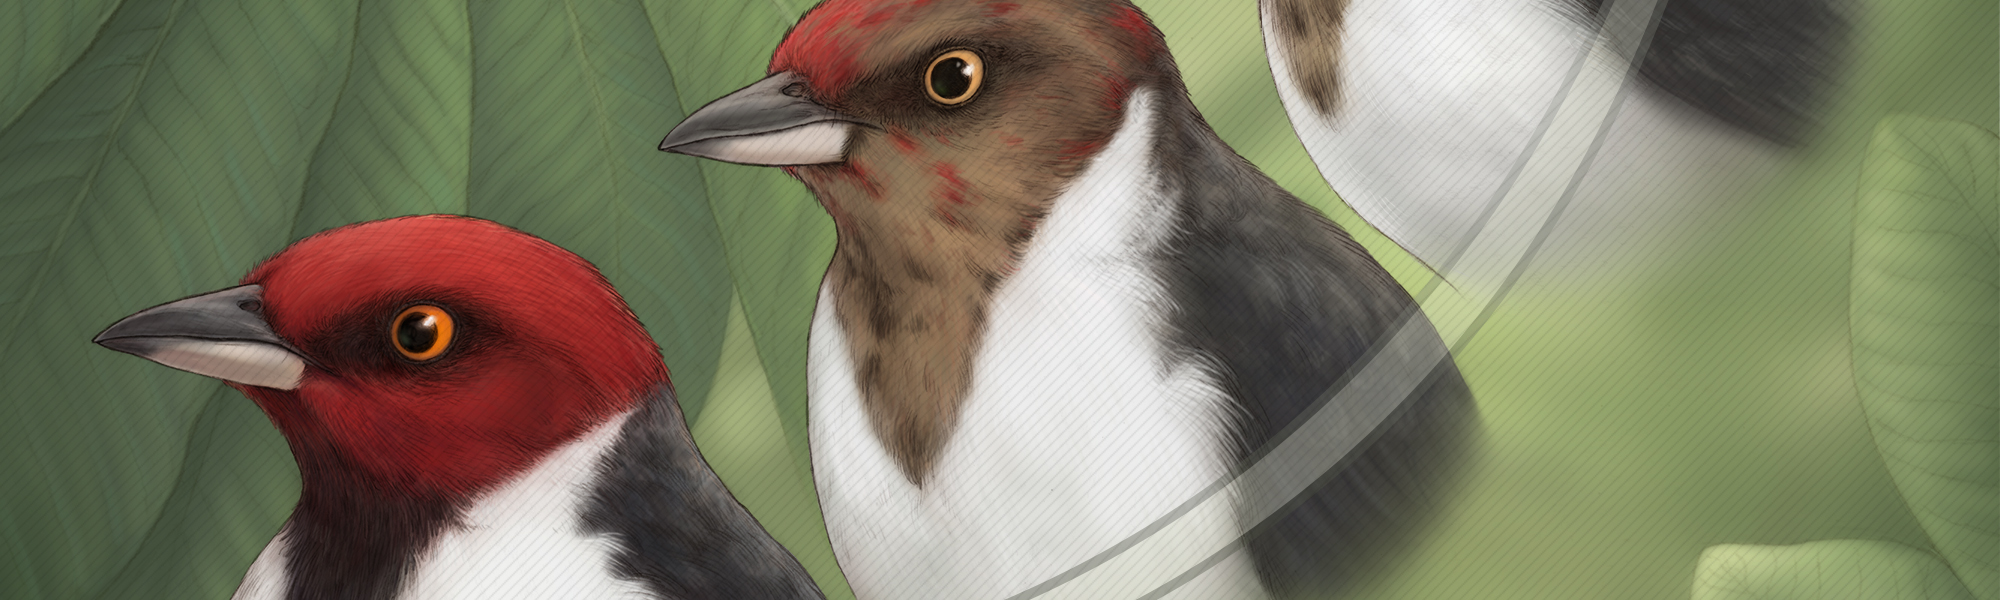 Red-capped cardinals banner